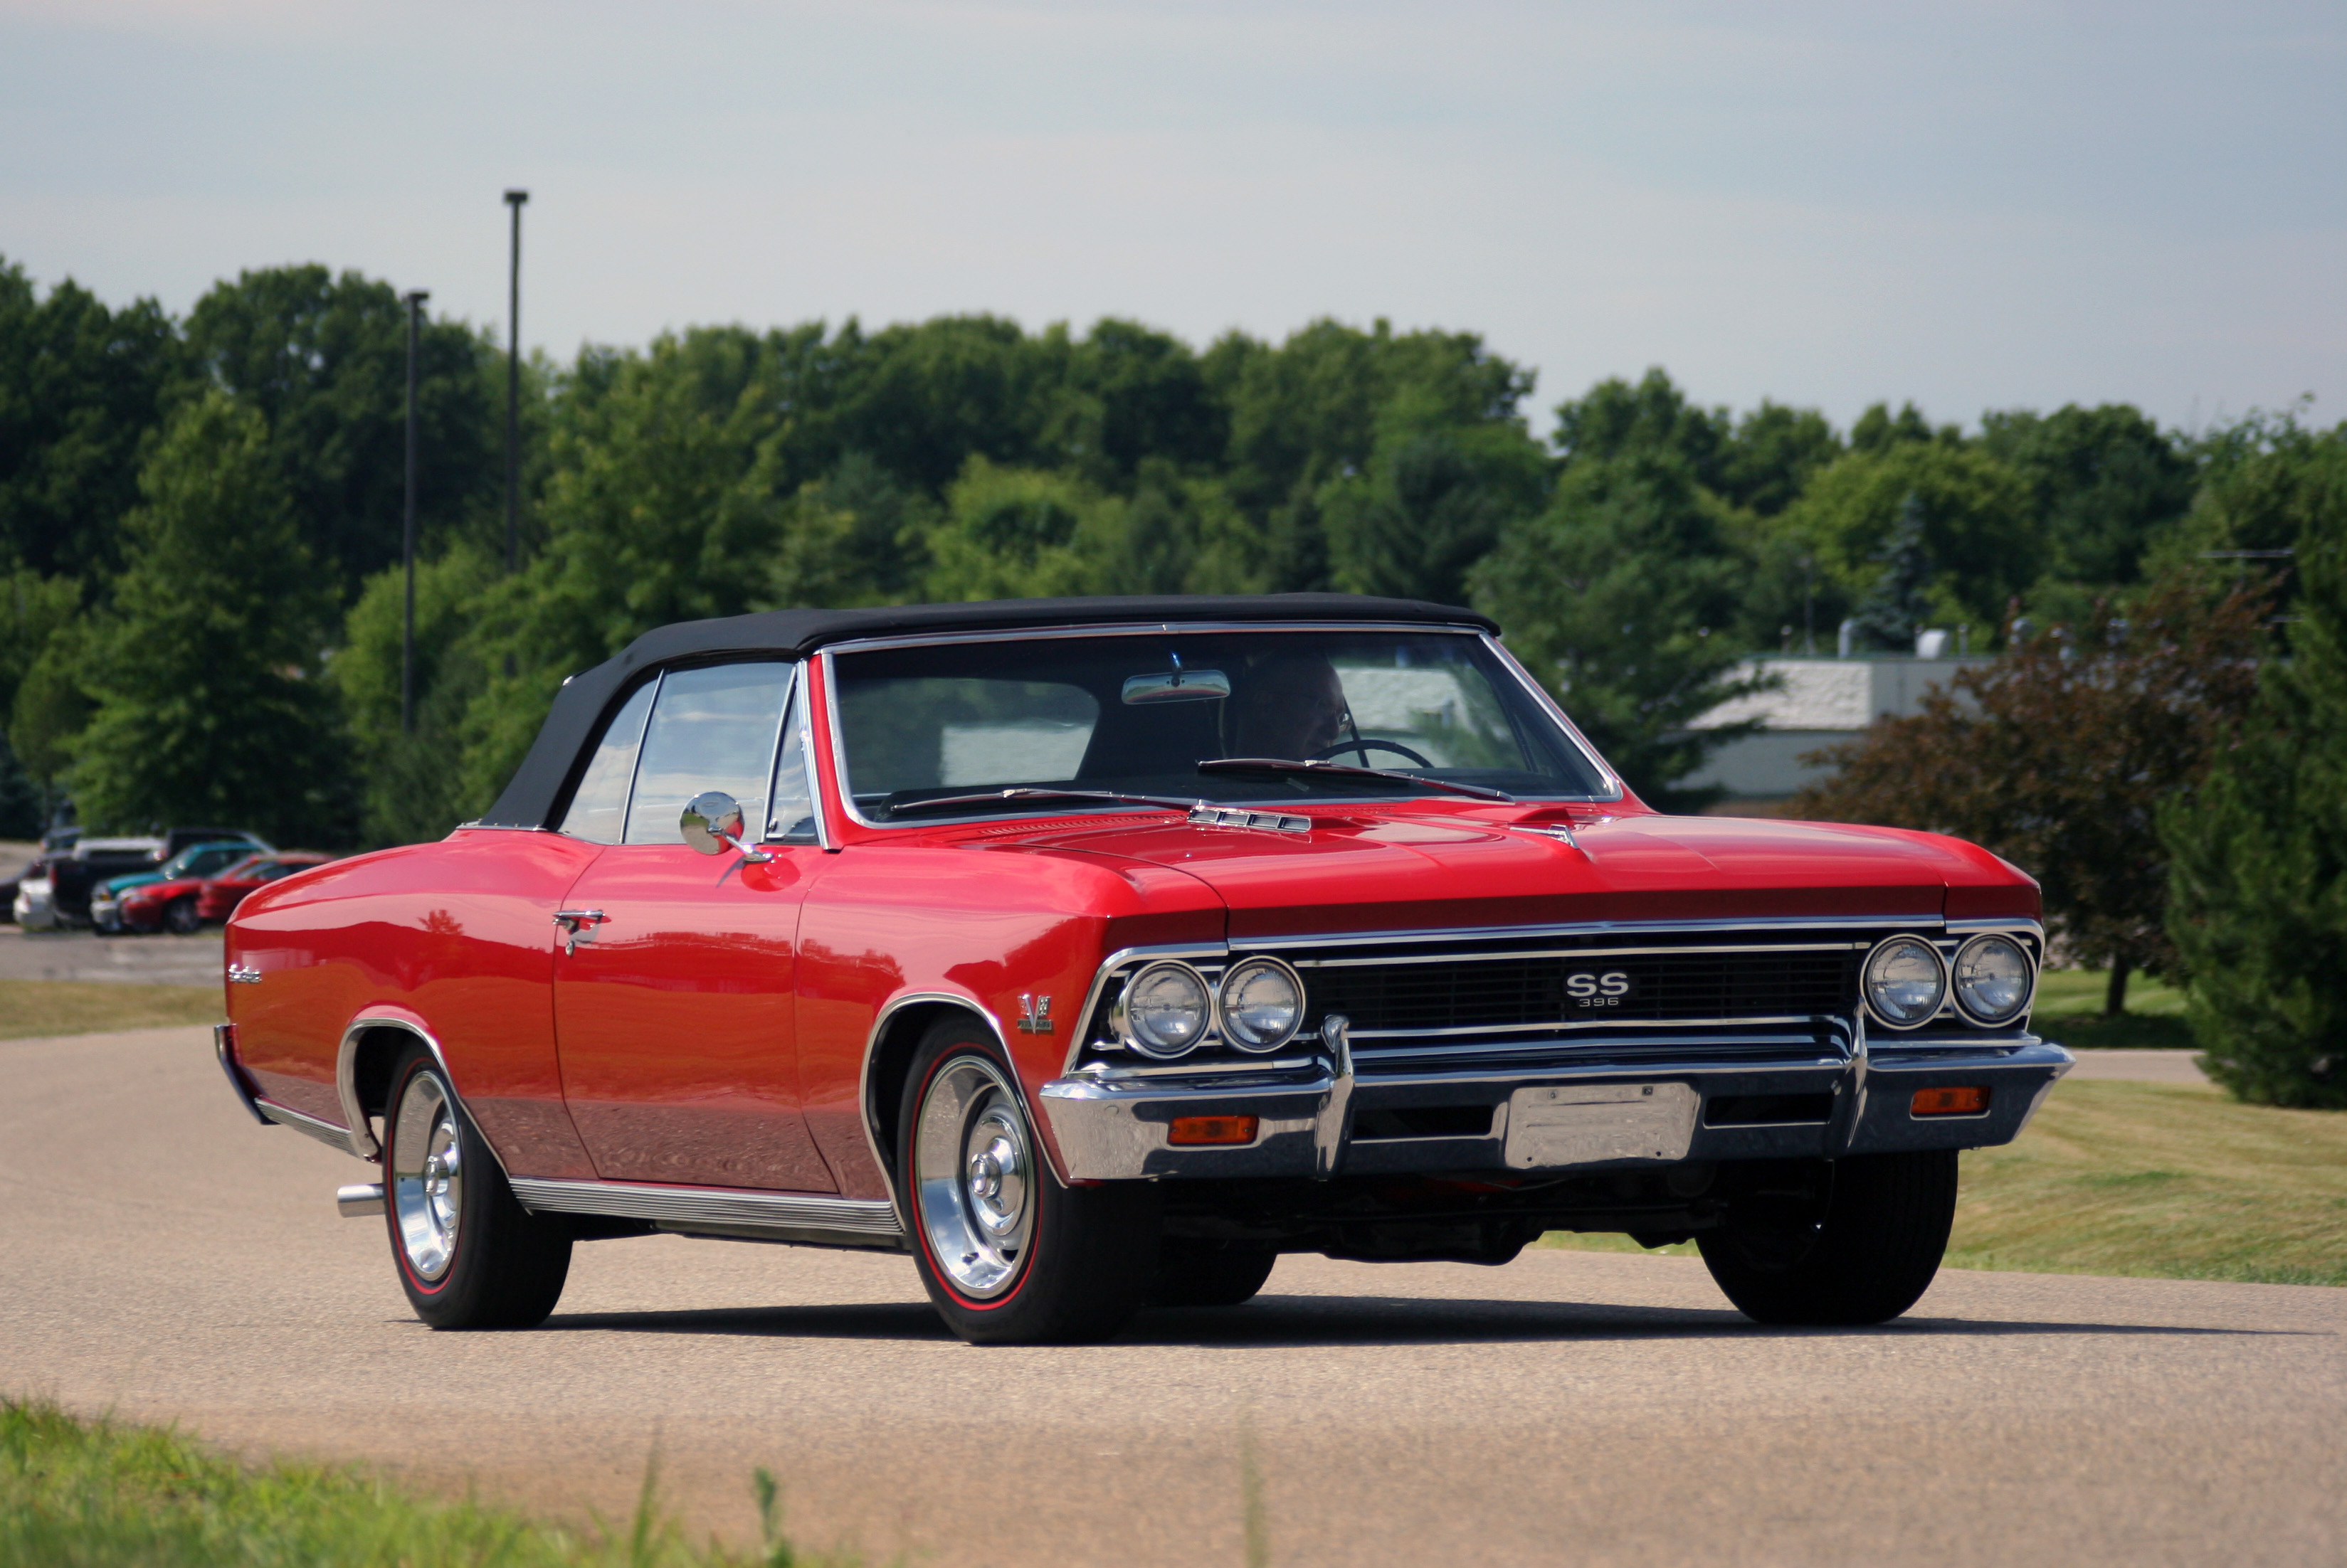 66 Chevelle Wallpaper Related Keywords Suggestions   66 Chevelle 3298x2204